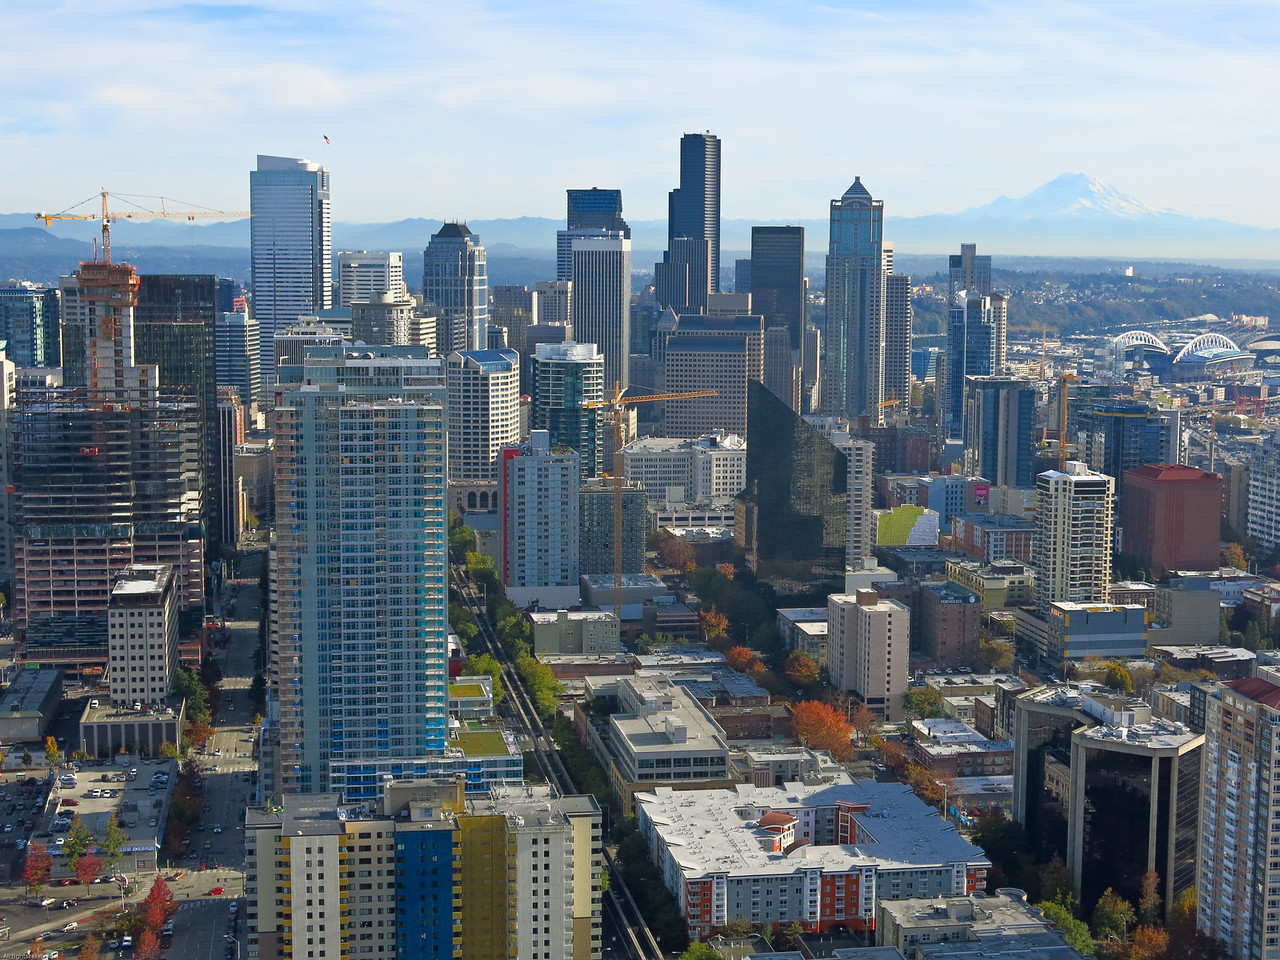 Back to looking SSE:  Downtown Seattle with Mount Rainier in distance